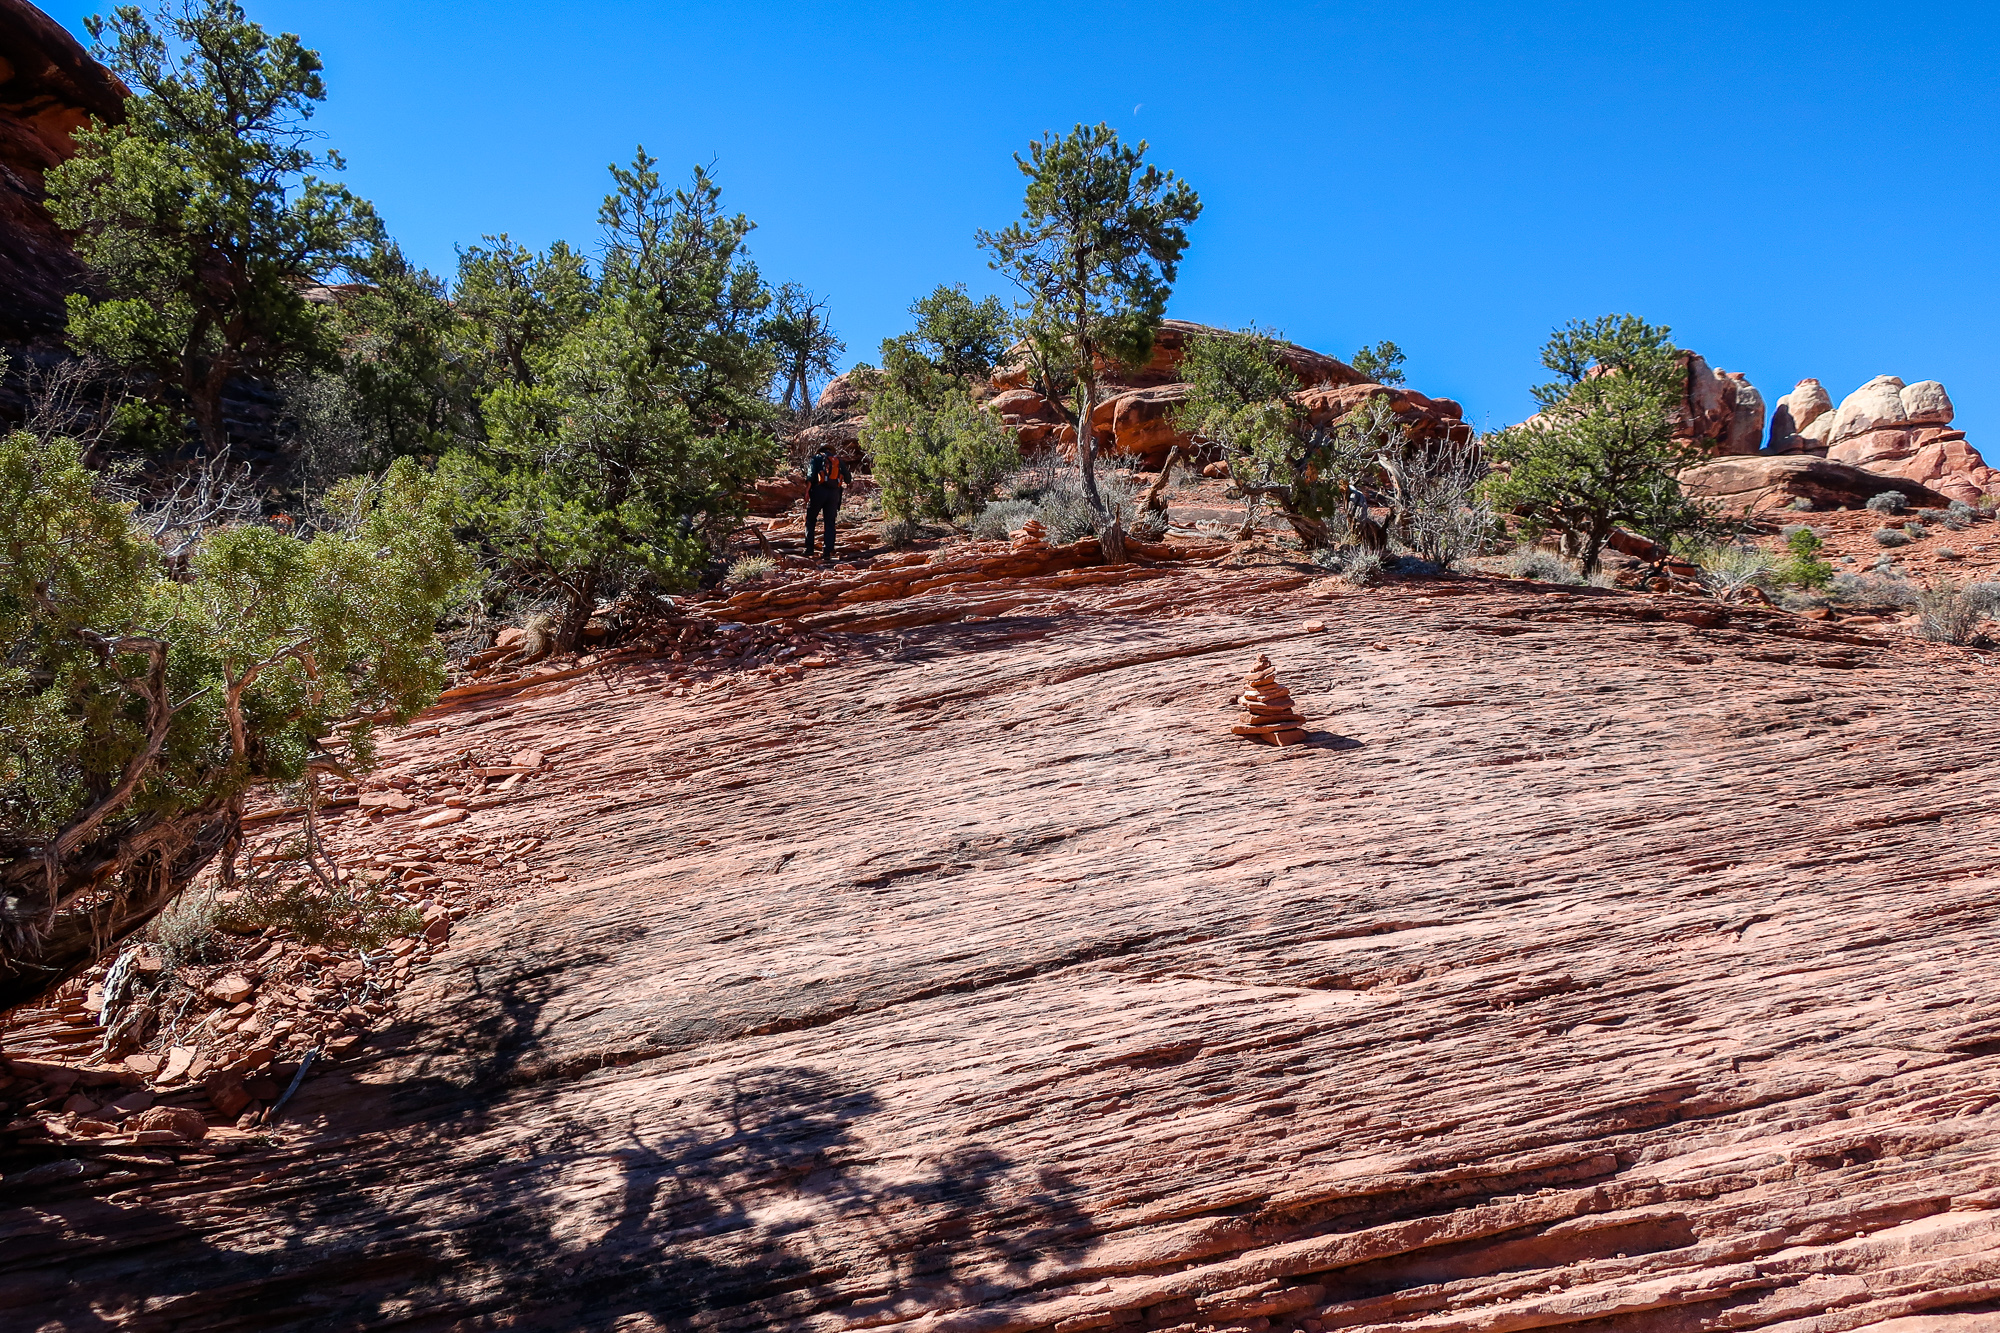 druid arch elephant hill beginner trail guide hiking canyonlands needs alrea